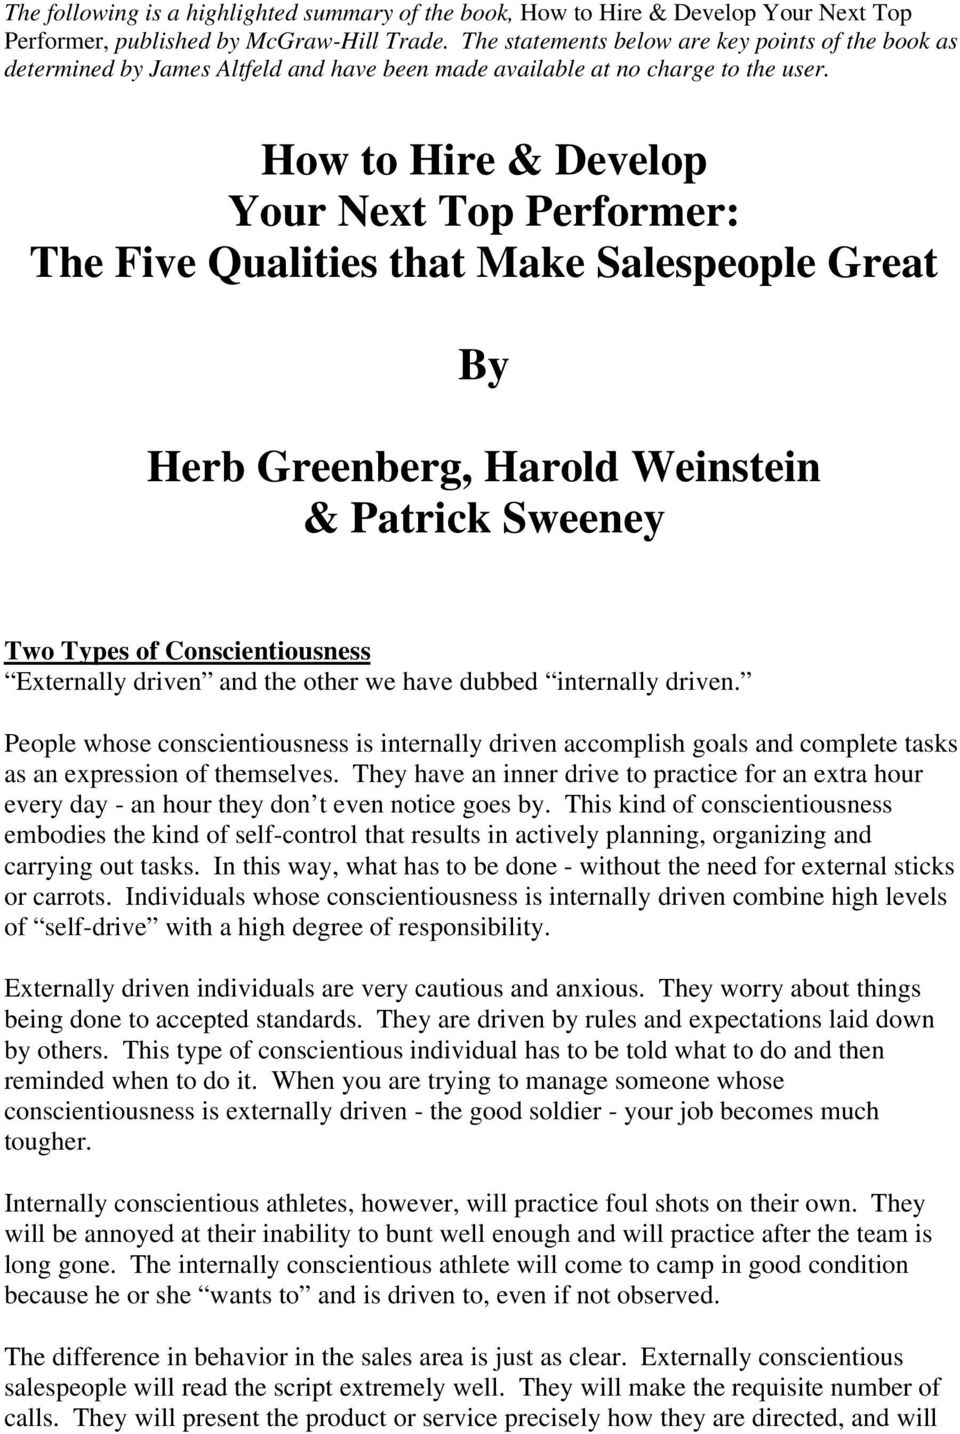 How to Hire & Develop Your Next Top Performer: The Five Qualities that Make Salespeople Great By Herb Greenberg, Harold Weinstein & Patrick Sweeney Two Types of Conscientiousness Externally driven